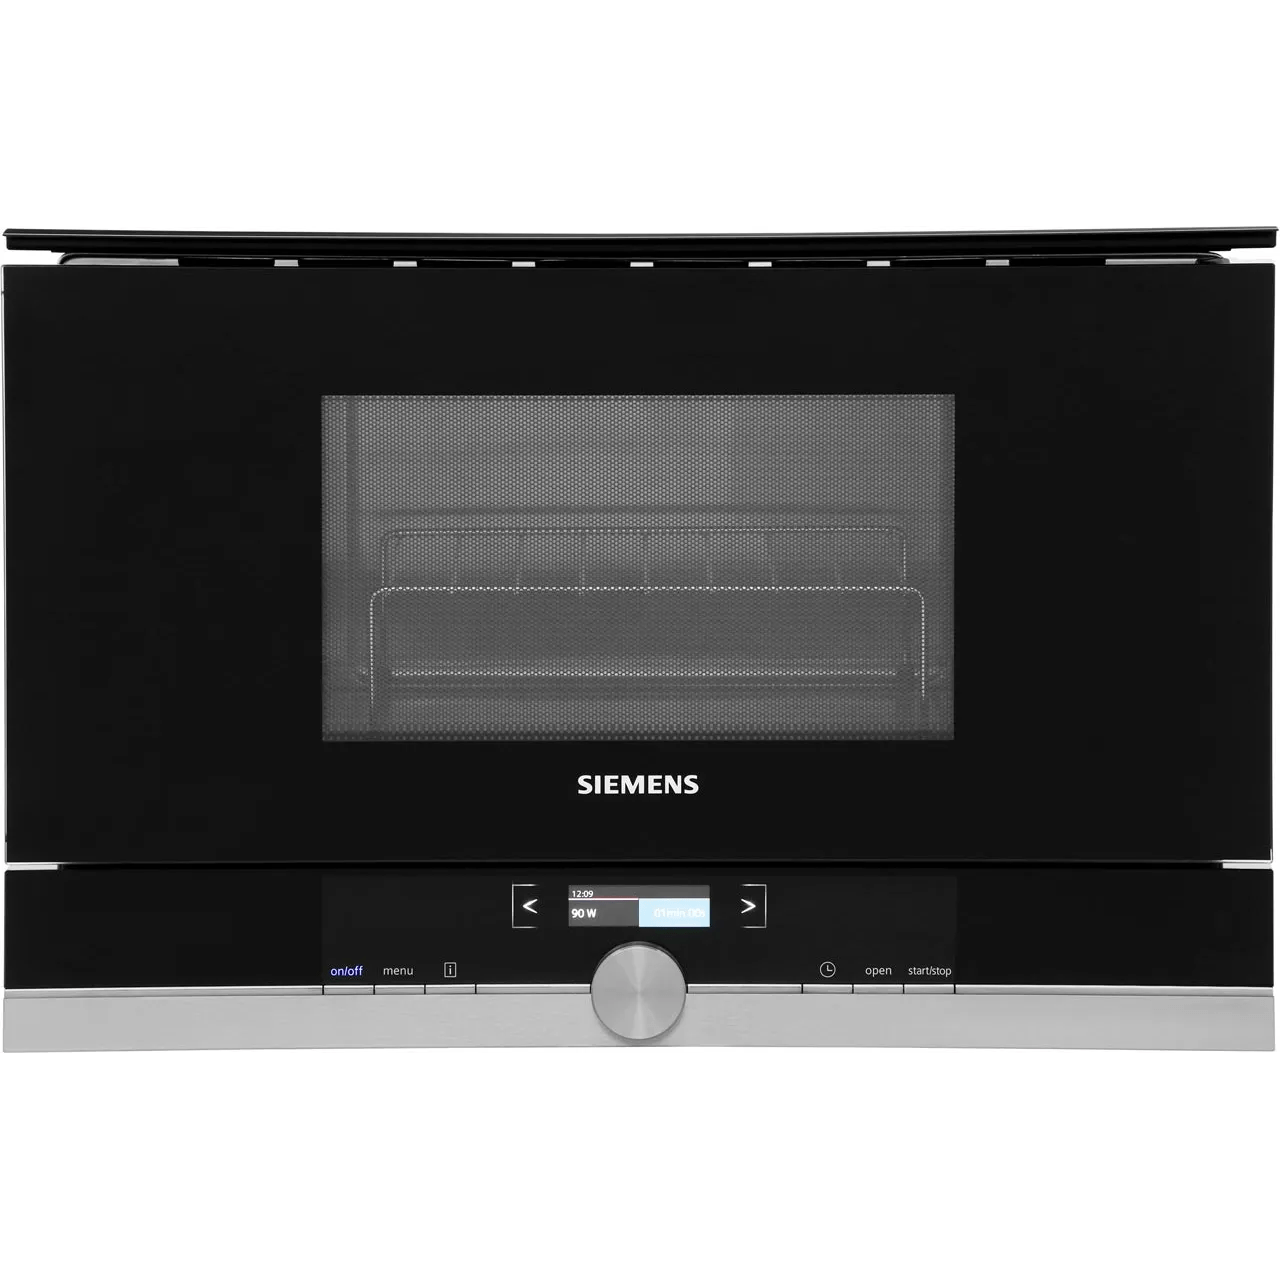 siemens iq 700 be634lgs1b built in microwave with grill black stainless steel